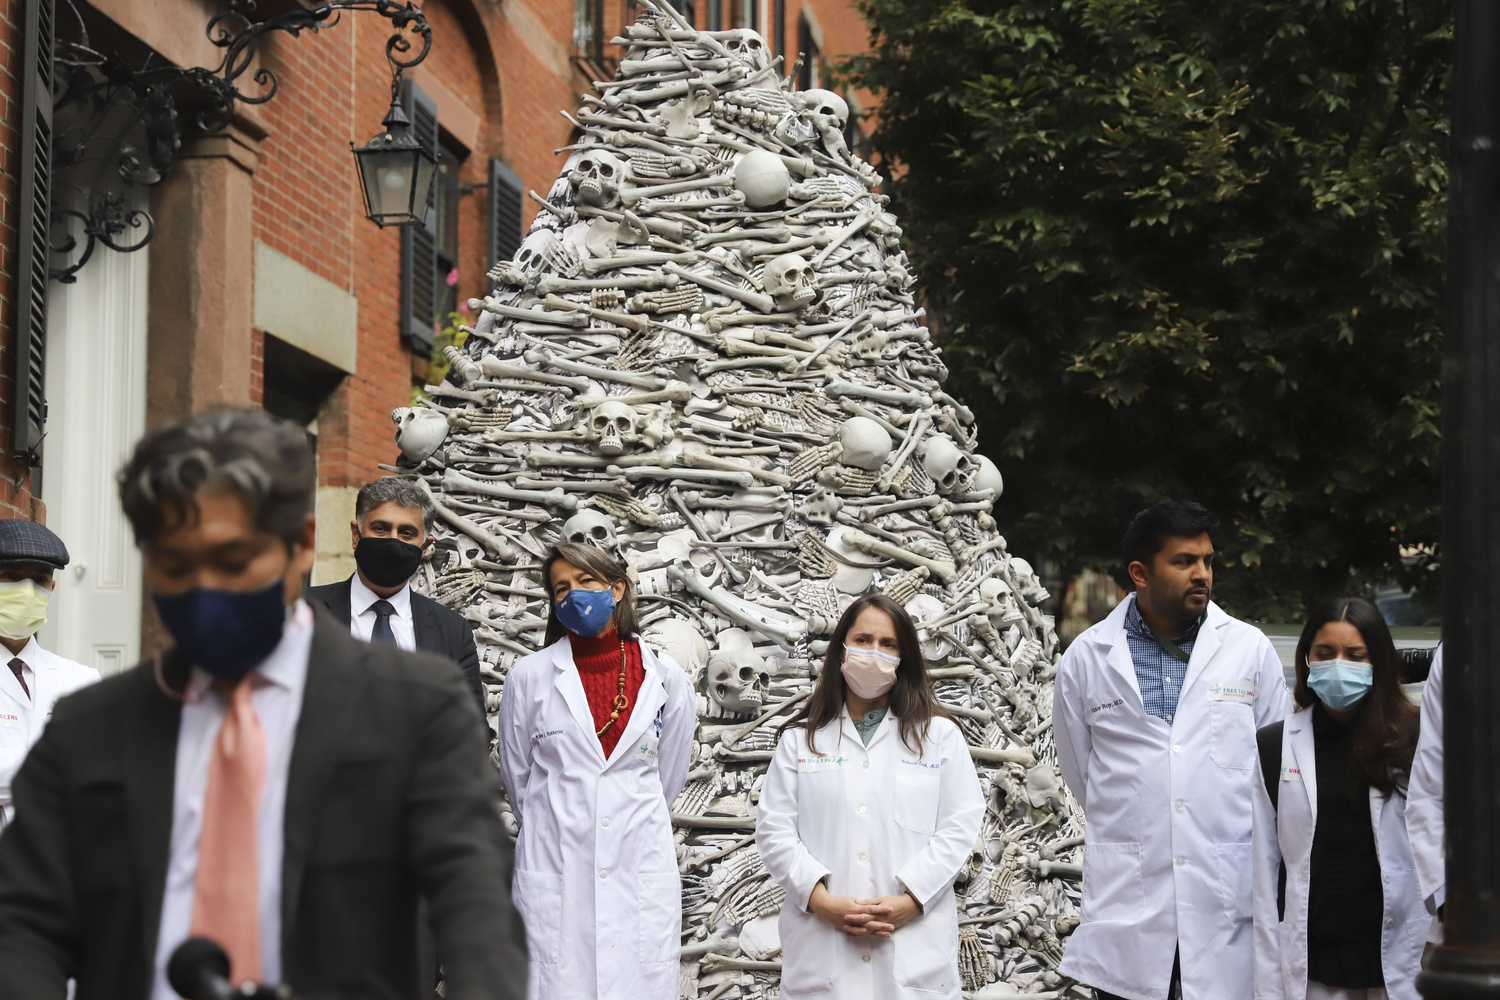 A group of Harvard-affiliated doctors called for global vaccine equity outside the home of Moderna's CEO Wednesday, speaking in front of a 12-foot high display of artificial bones.